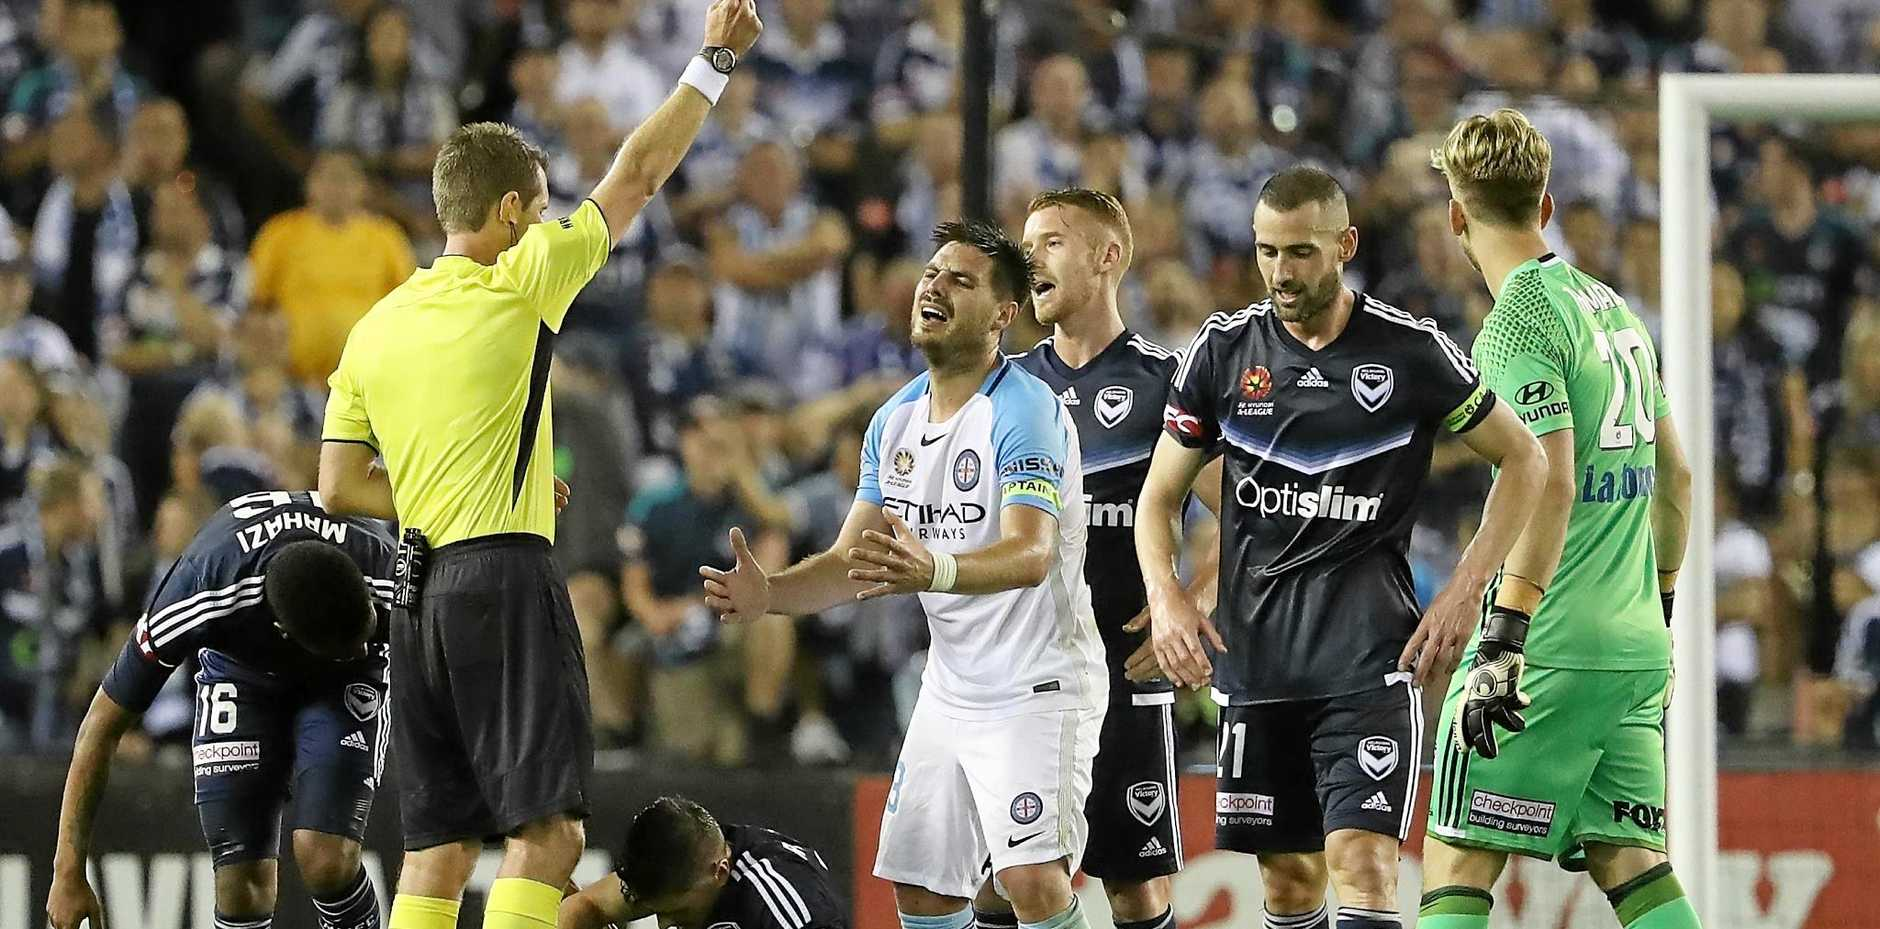 Bruno Fornaroli of Melbourne City is shown a yellow card by referee Chris Beath during the round 18 A-League match against the Melbourne Victory.